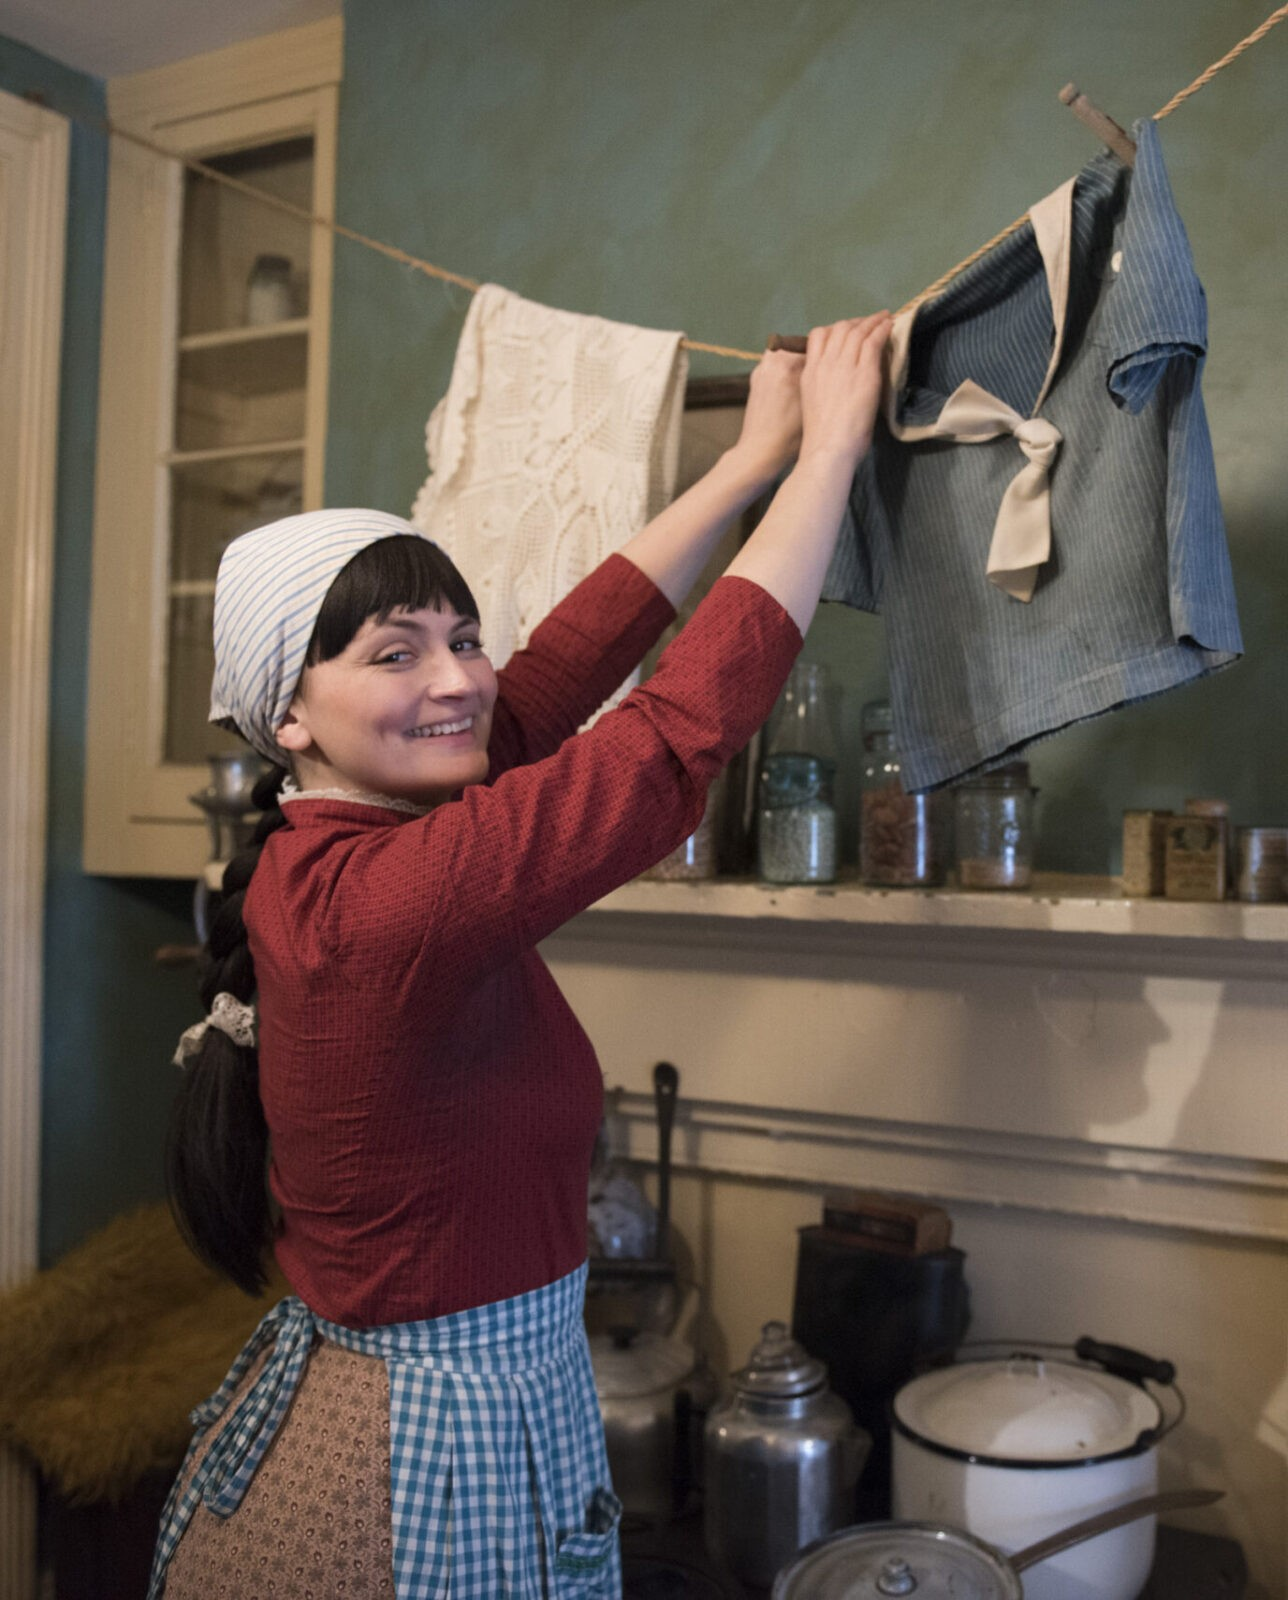 Promotional photo of an actress playing Victoria Confino. Smiling, she wears a headband and blue checkered apron as she hangs clothes on a line hanging in the kitchen of the Confino apartment